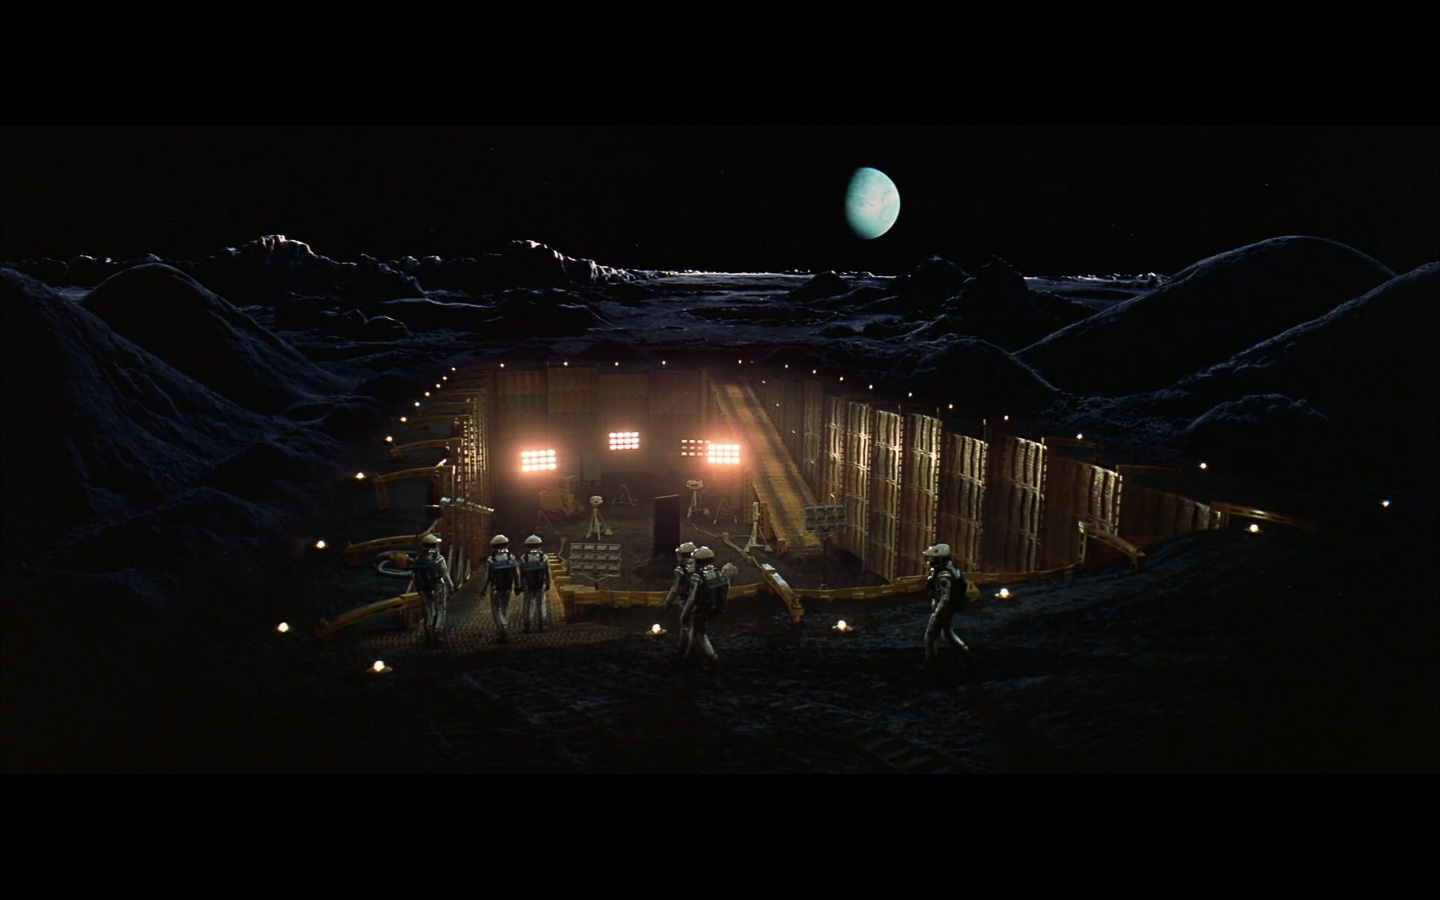 scene on the moon obelisk - space odyssey-5